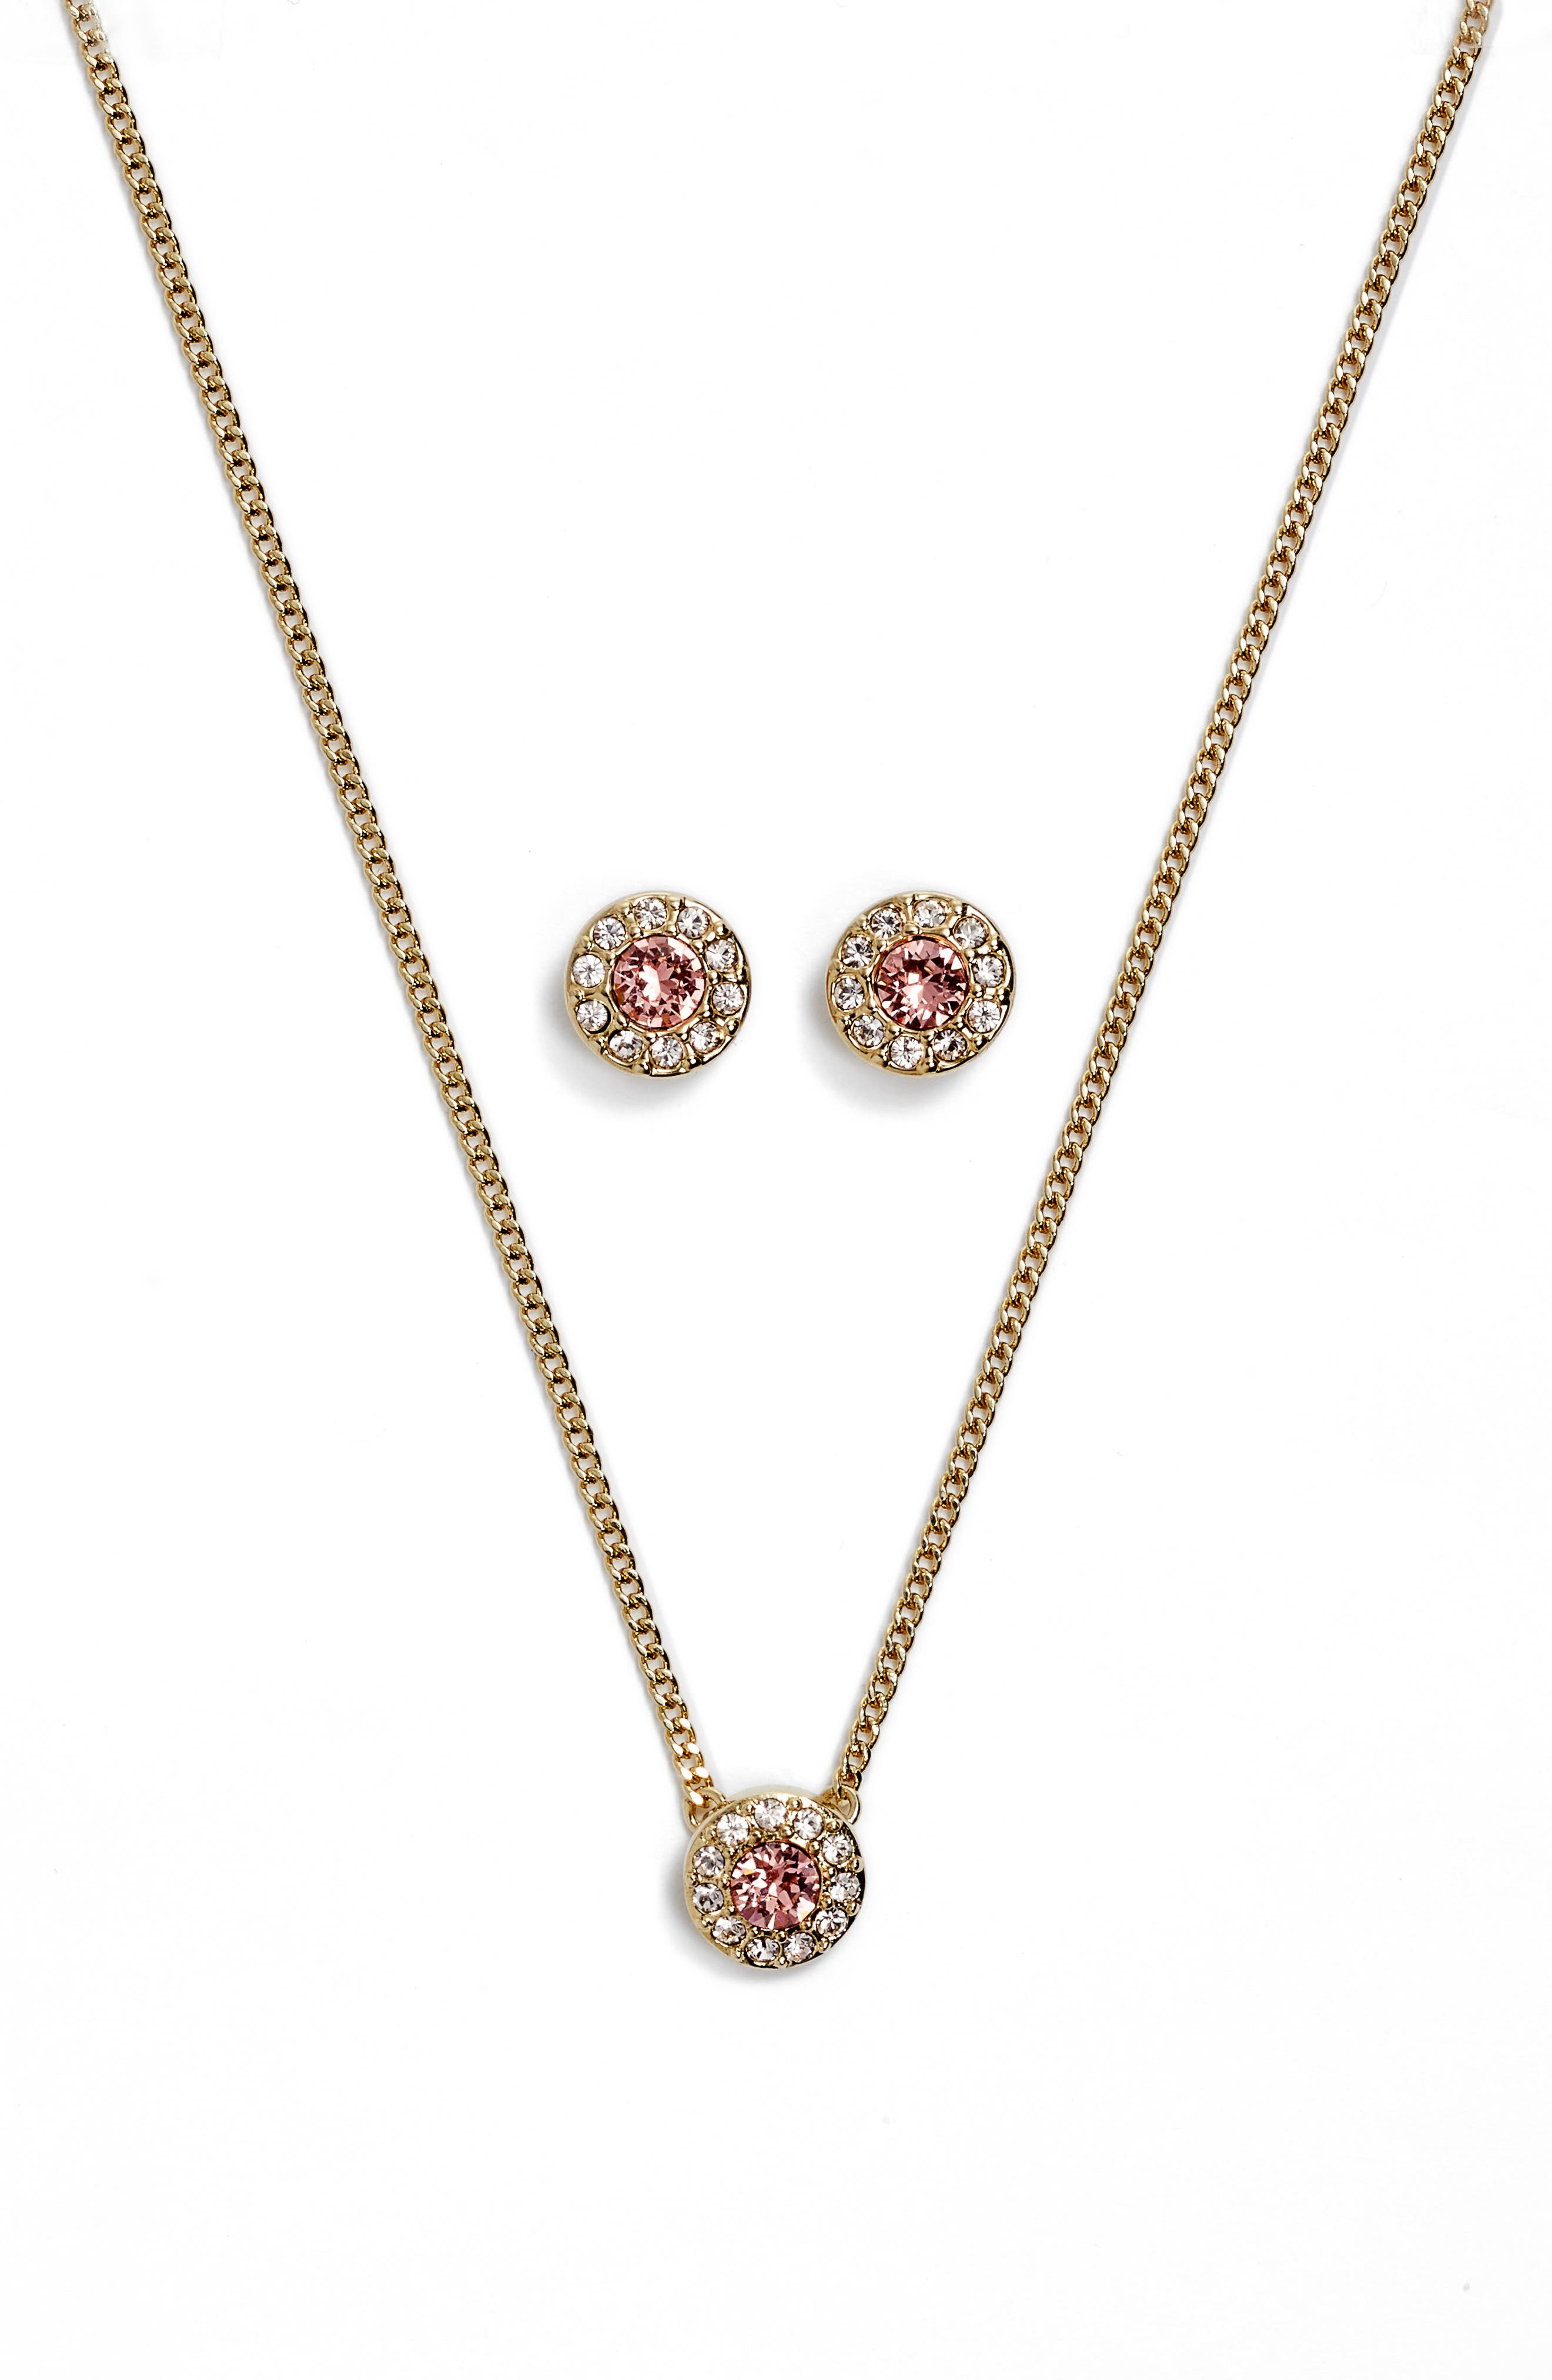 Main Image - Givenchy Pavé Necklace & Earrings Set